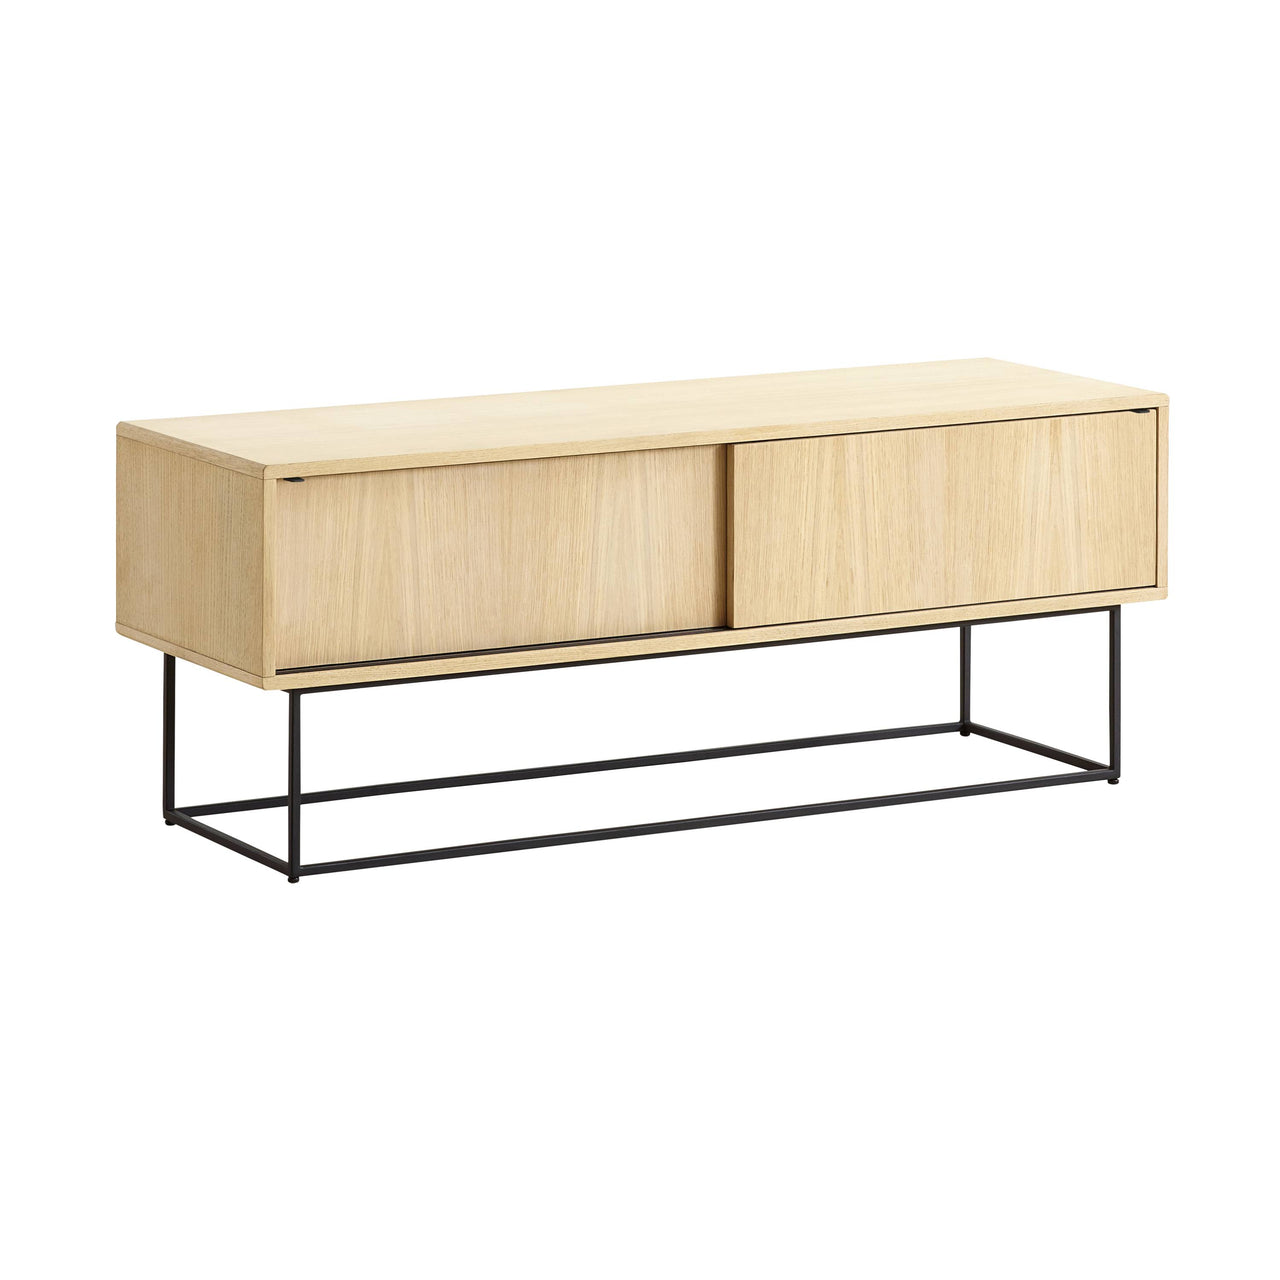 Virka Low Sideboard: White Oiled Oak